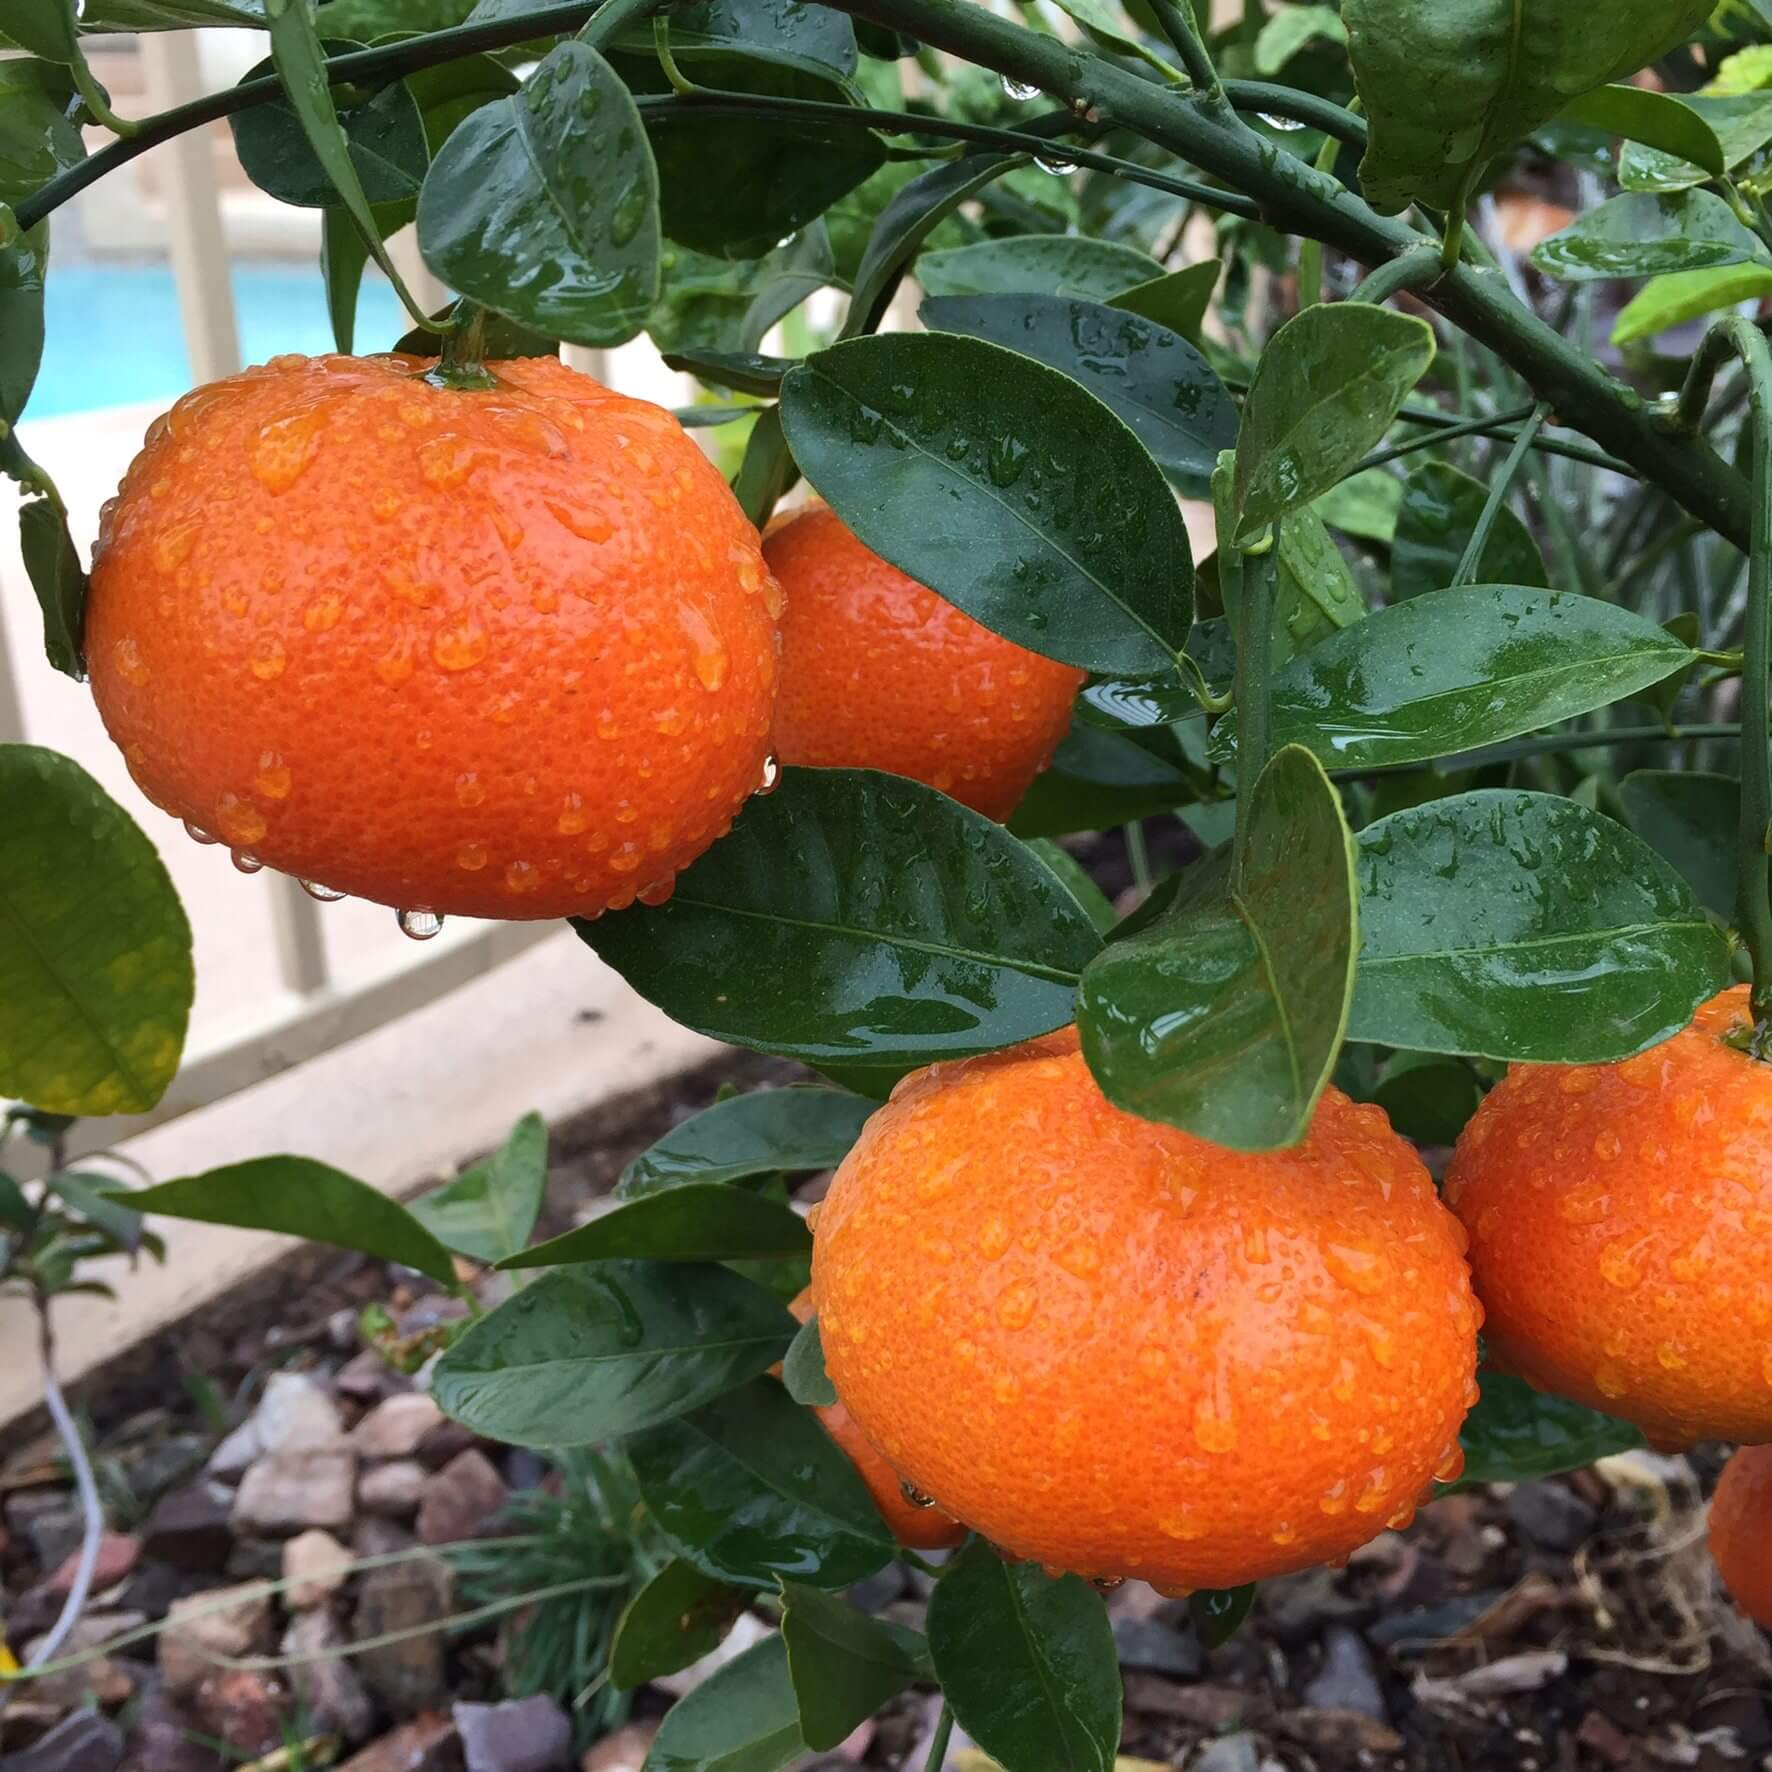 Growing Citrus In Containers